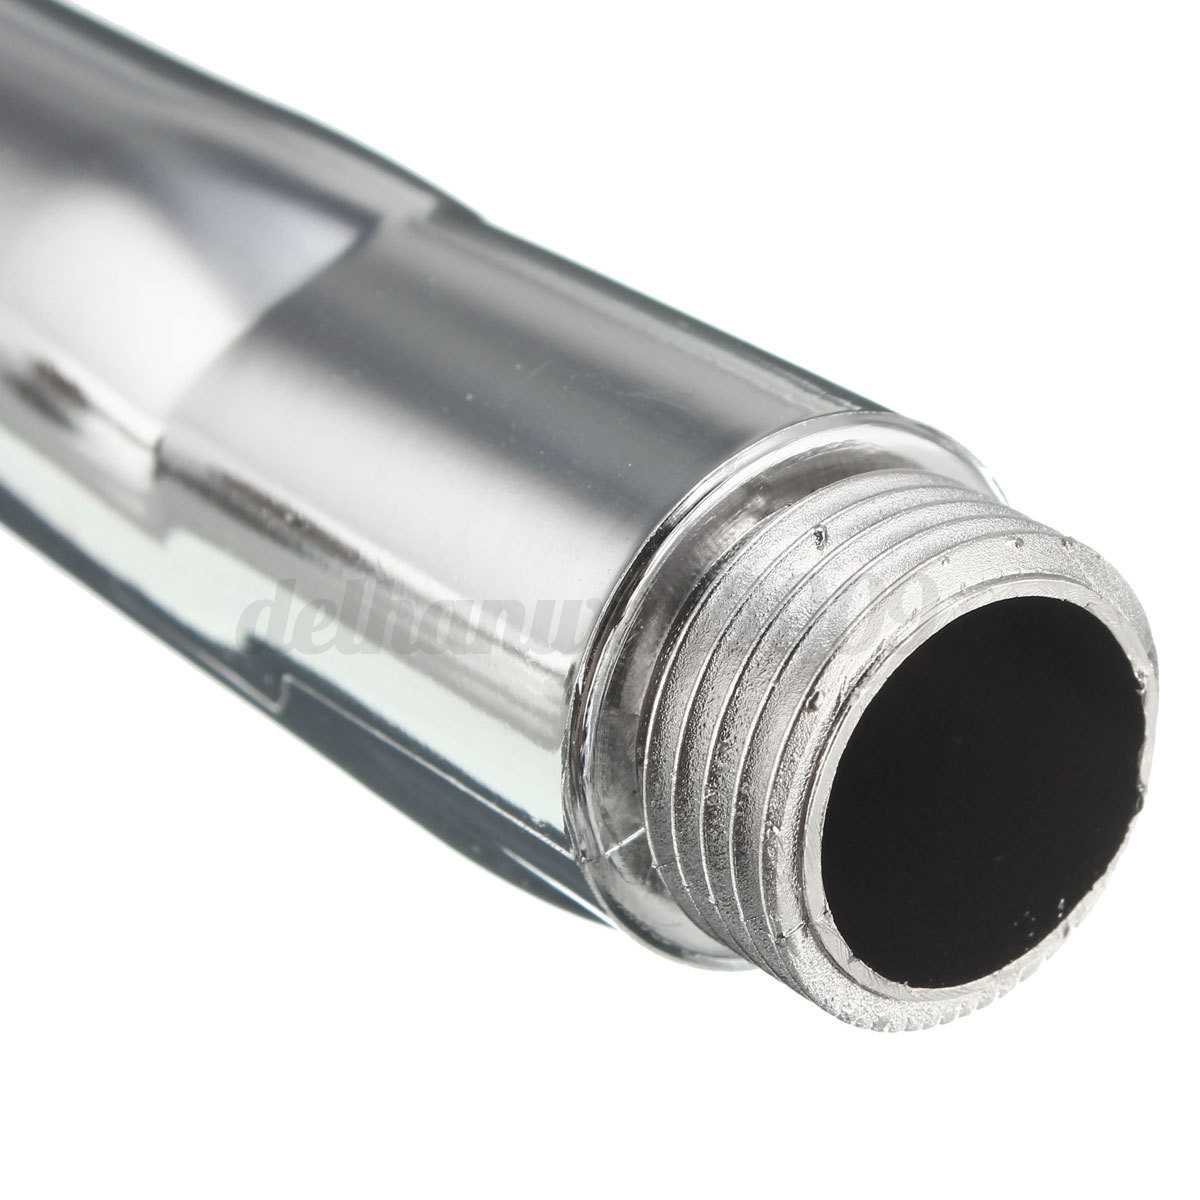 bathroom shower head and 1 5m or 2 0m flexible hose pipe y shape shower hose perfect for connecting a shower to